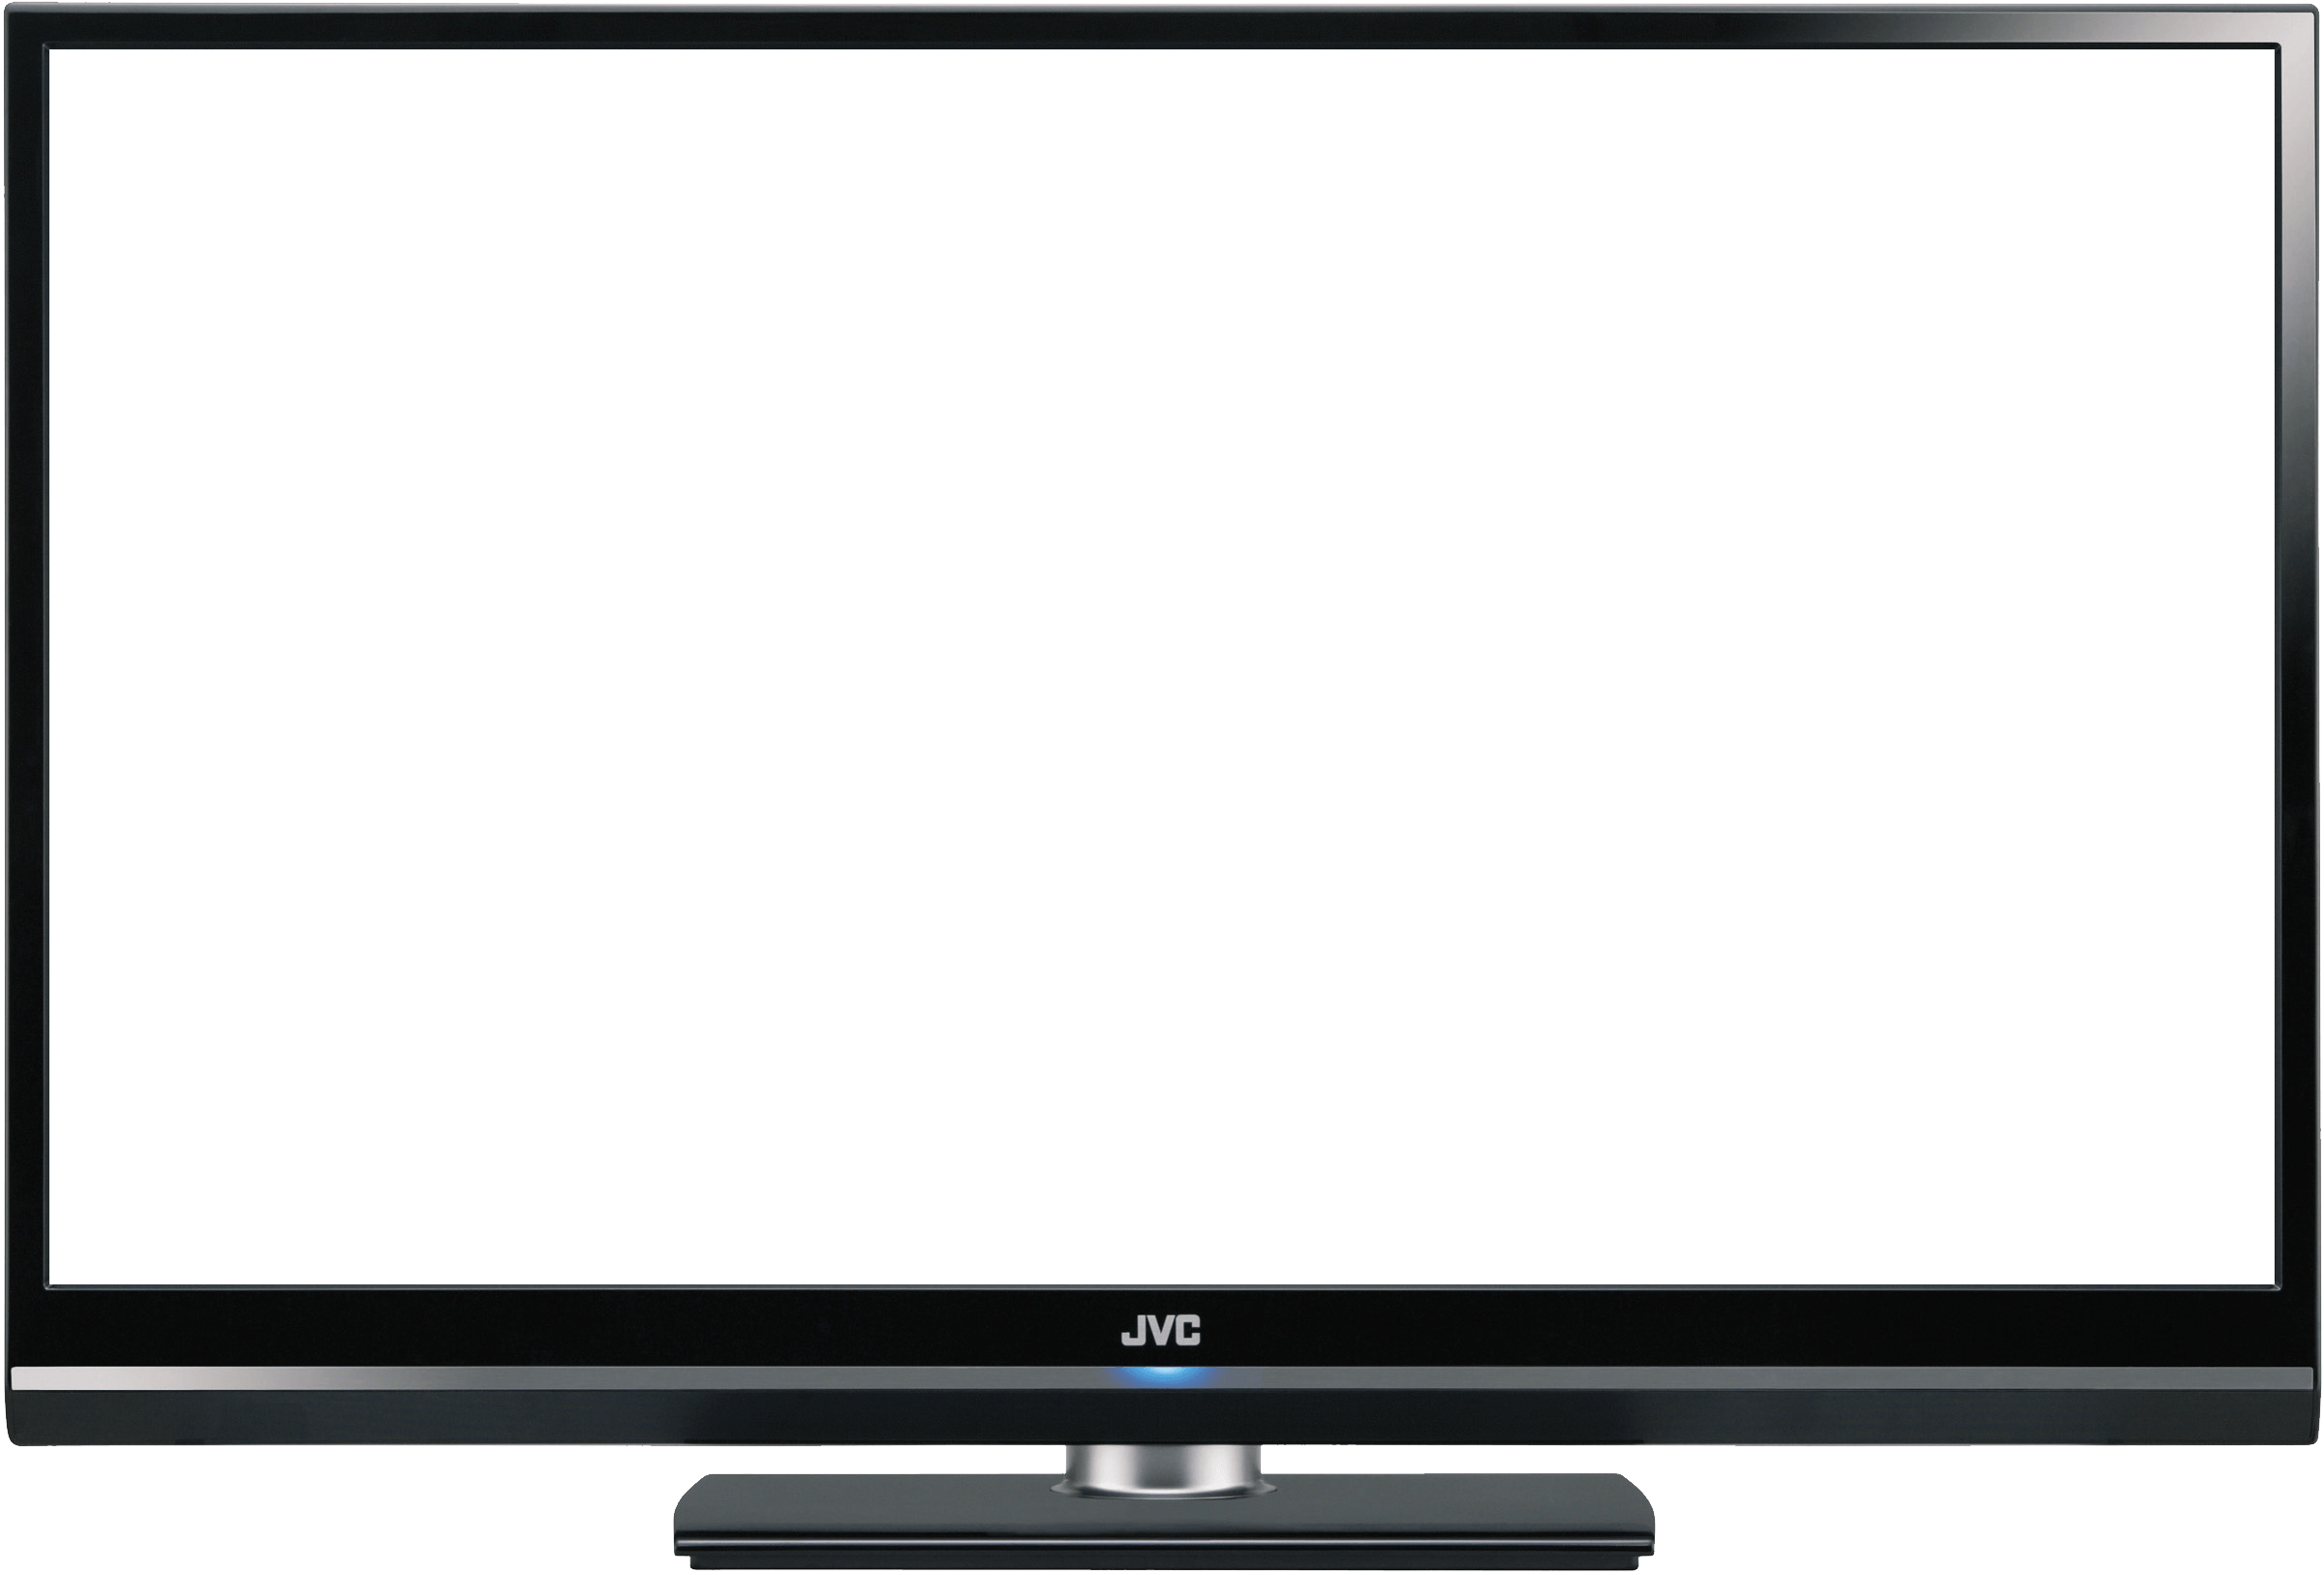 Monitor Transparent Lcd Png Image PNG Image